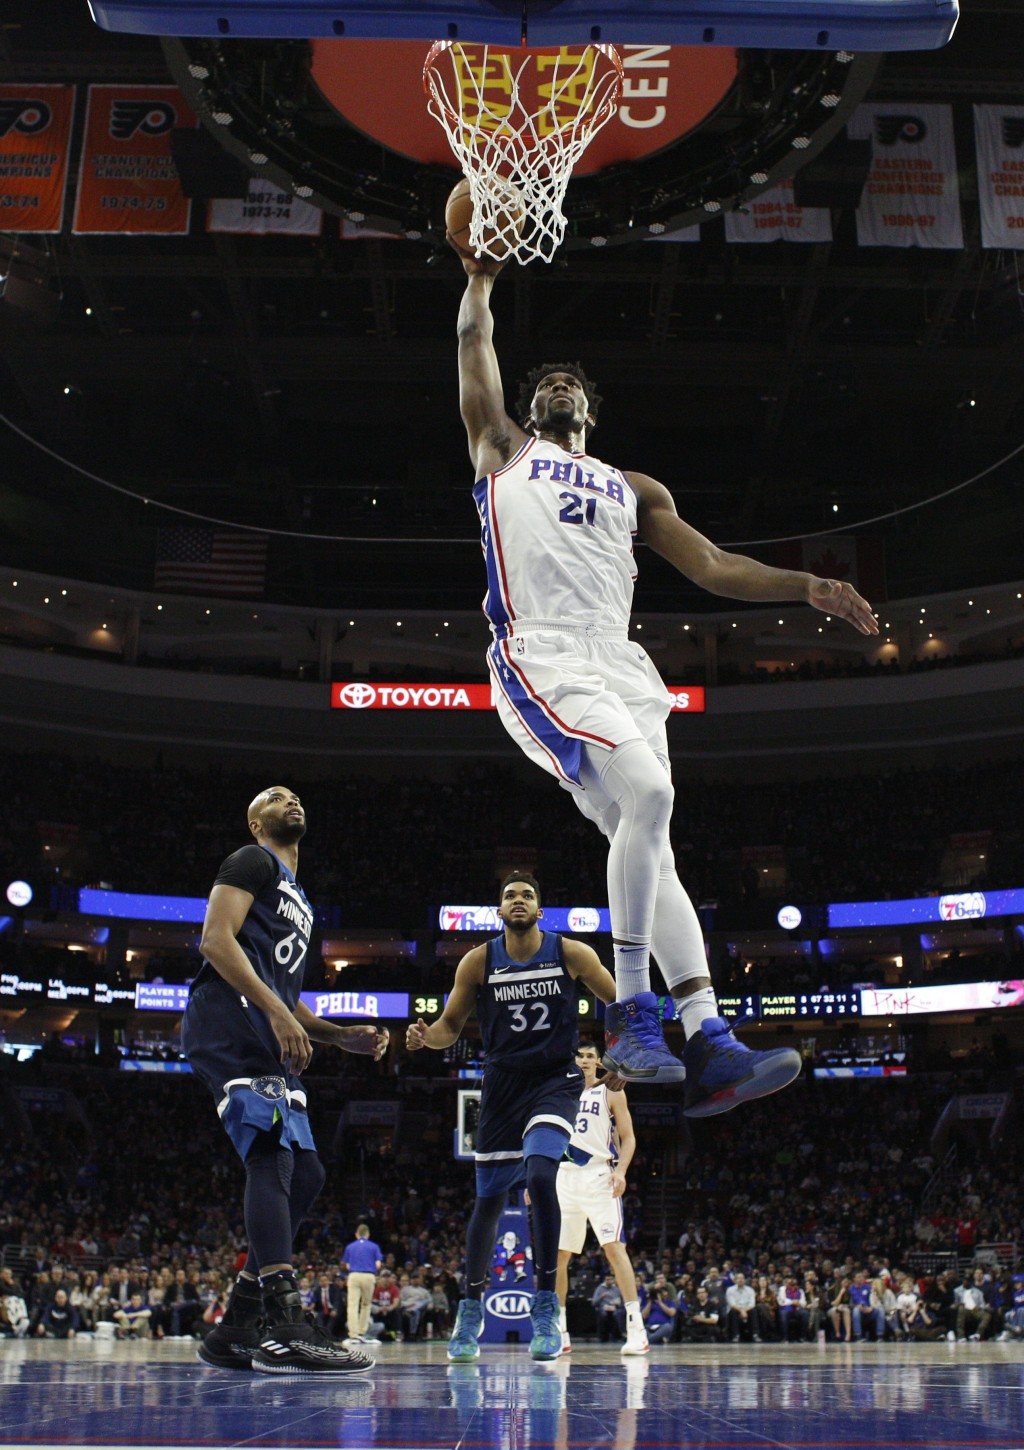 Philadelphia 76ers' Joel Embiid, of Cameroon, goes up for the dunk during the first half of an NBA basketball game against the Minnesota Timberwolves,...